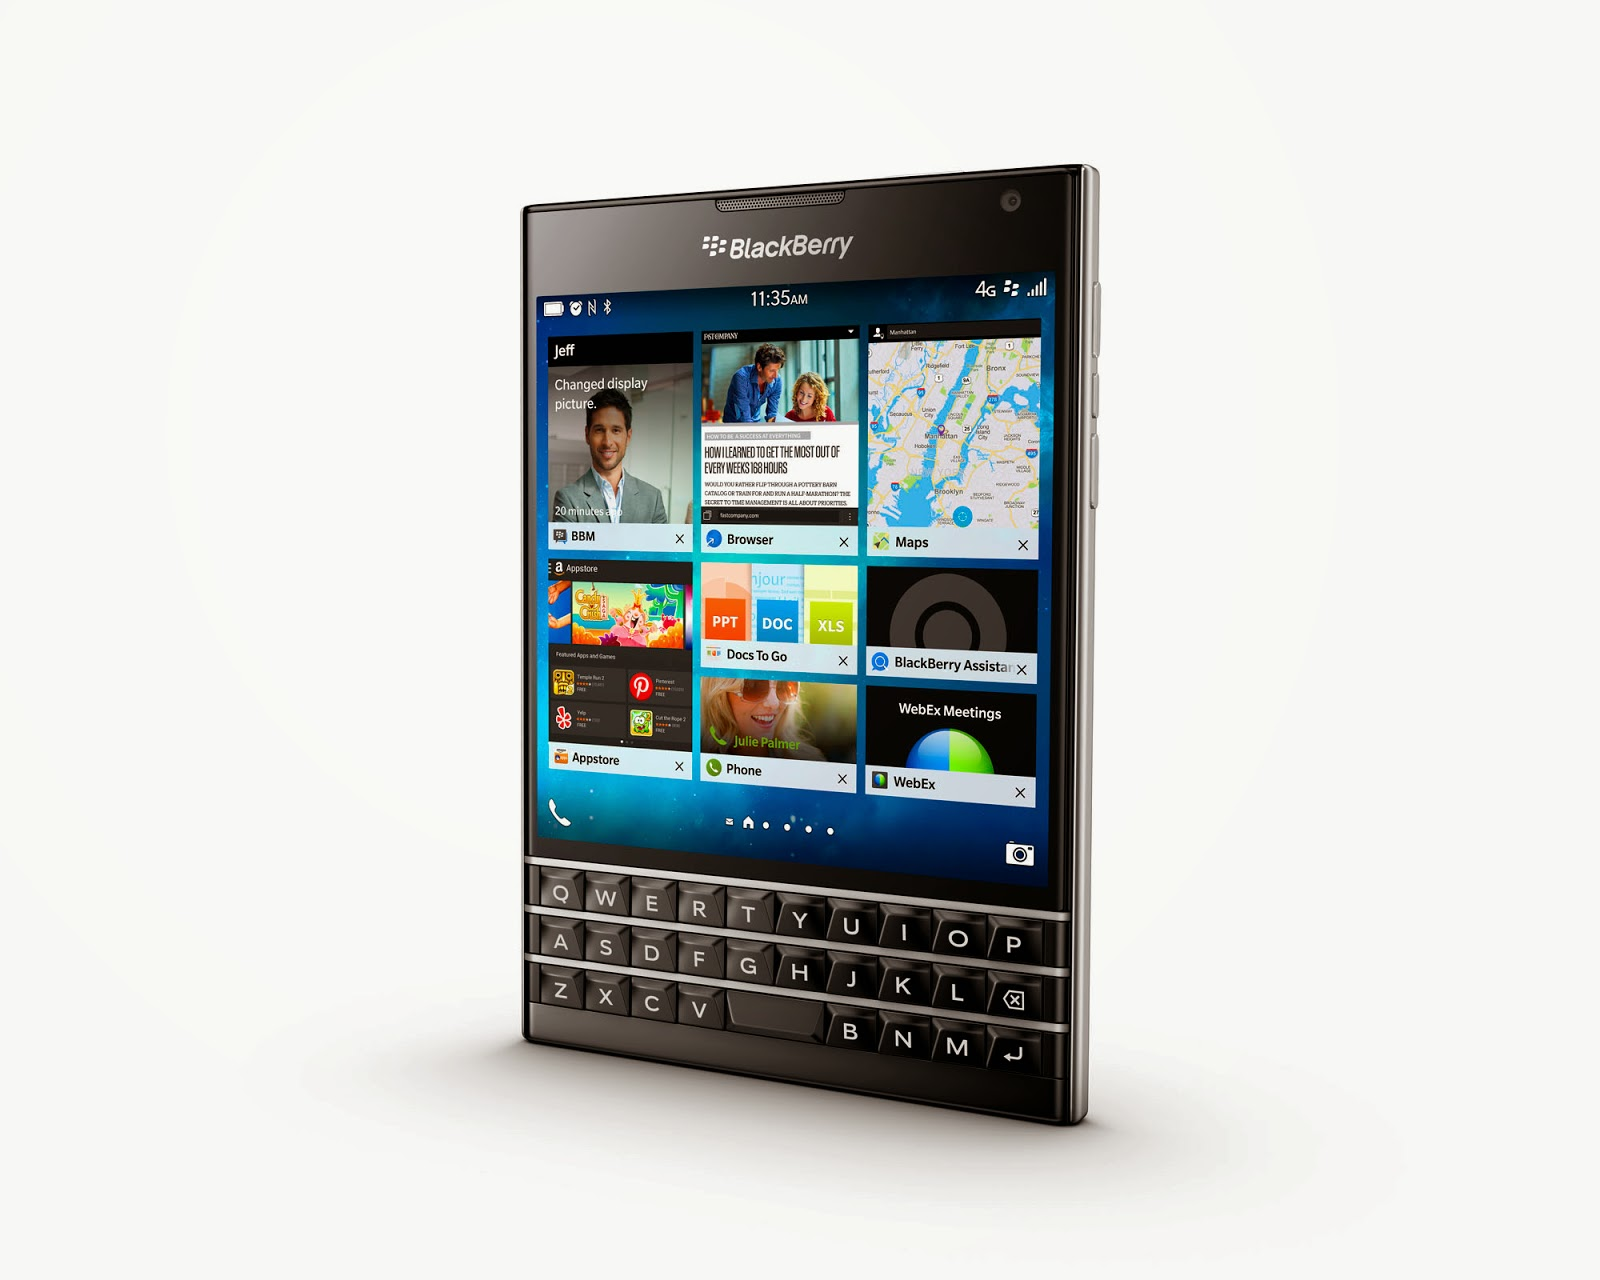 BlackBerry Passport Launched, Productivity Oriented Smartphone for P35,790